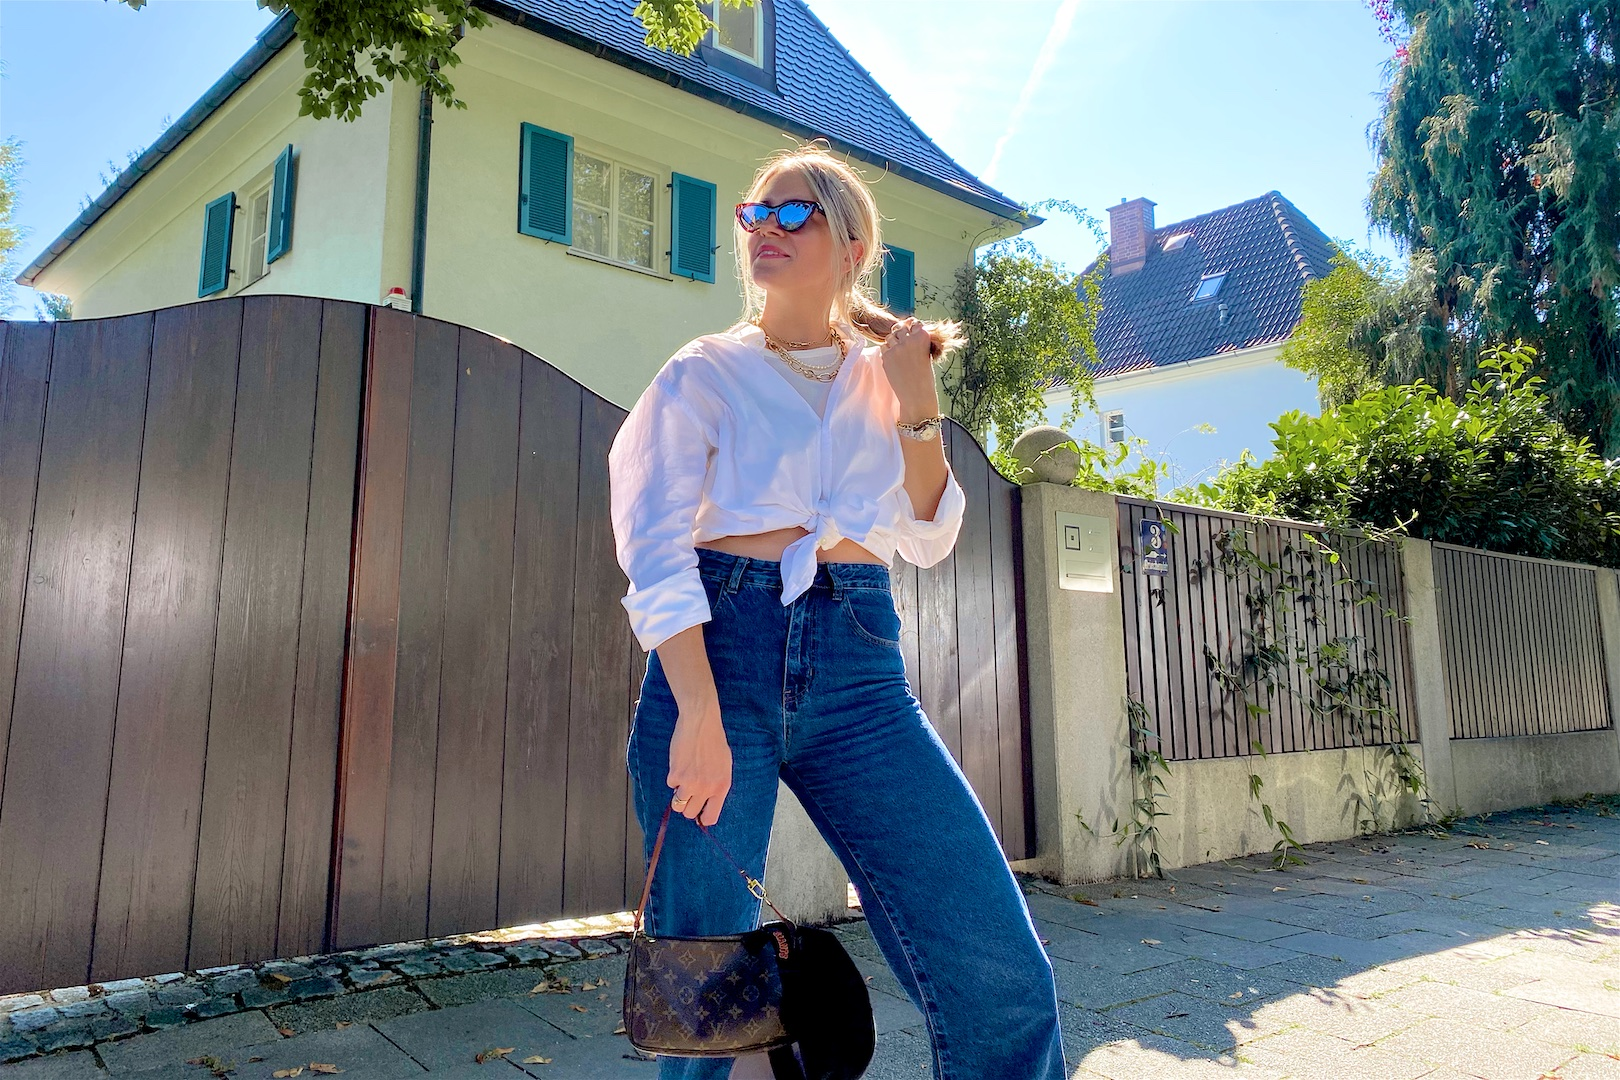 Fashion Basics. Fashion and Style Blog Girl from Heartfelt Hunt. Girl with blonde hair wearing a white shirt, wide leg jeans, white top, cap, cat-eye sunglasses, Louis Vuitton bag and Nike sneakers.